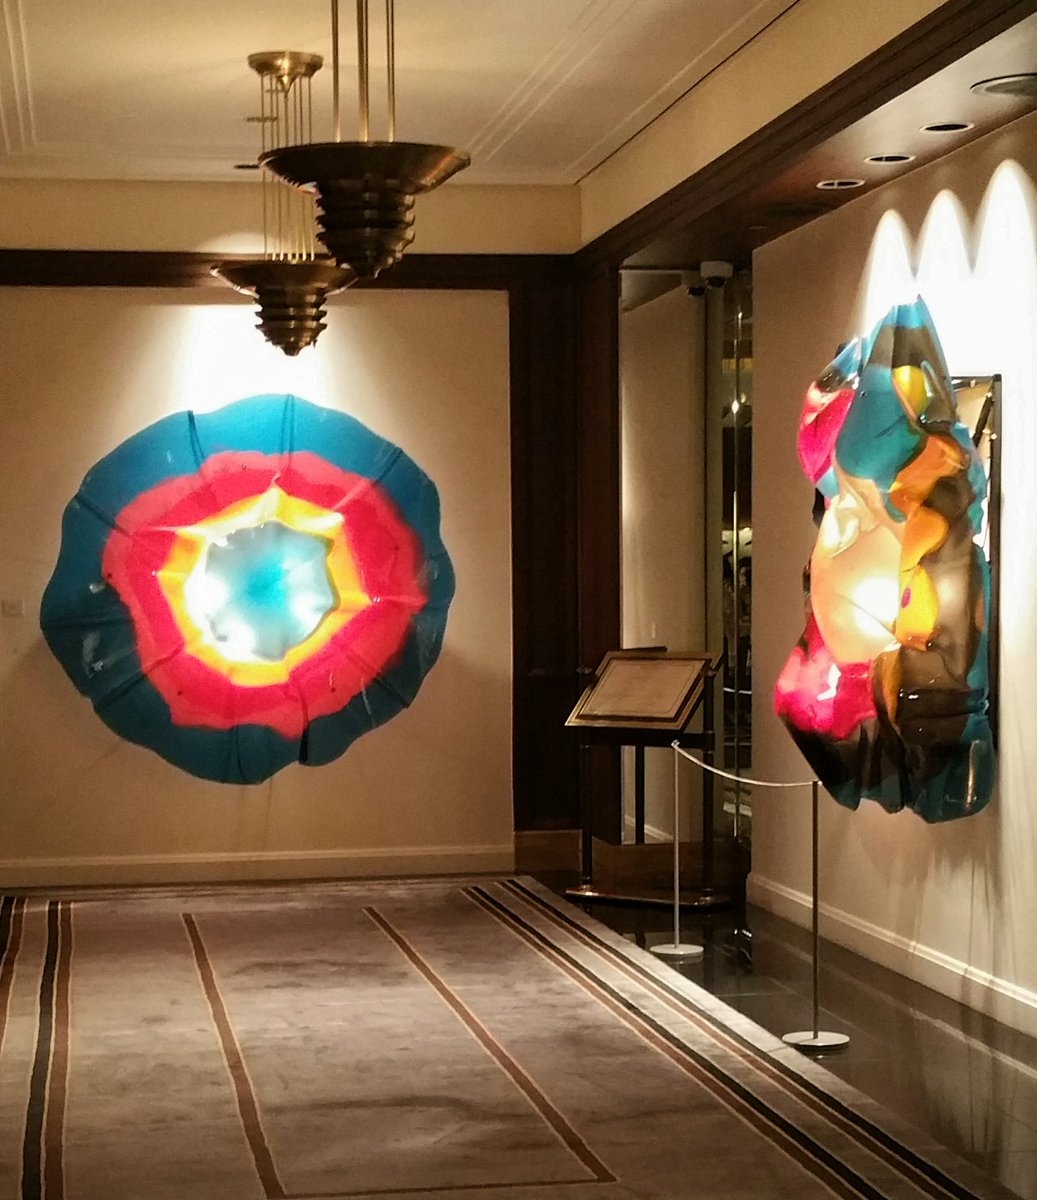 test Twitter Media - Pop into Peninsula Chicago's lobby today to see Italian artist Gaetano Pesce's vibrant resin installations. @ThePeninsulaChi @ChooseChicago https://t.co/qAzZaKNgi9